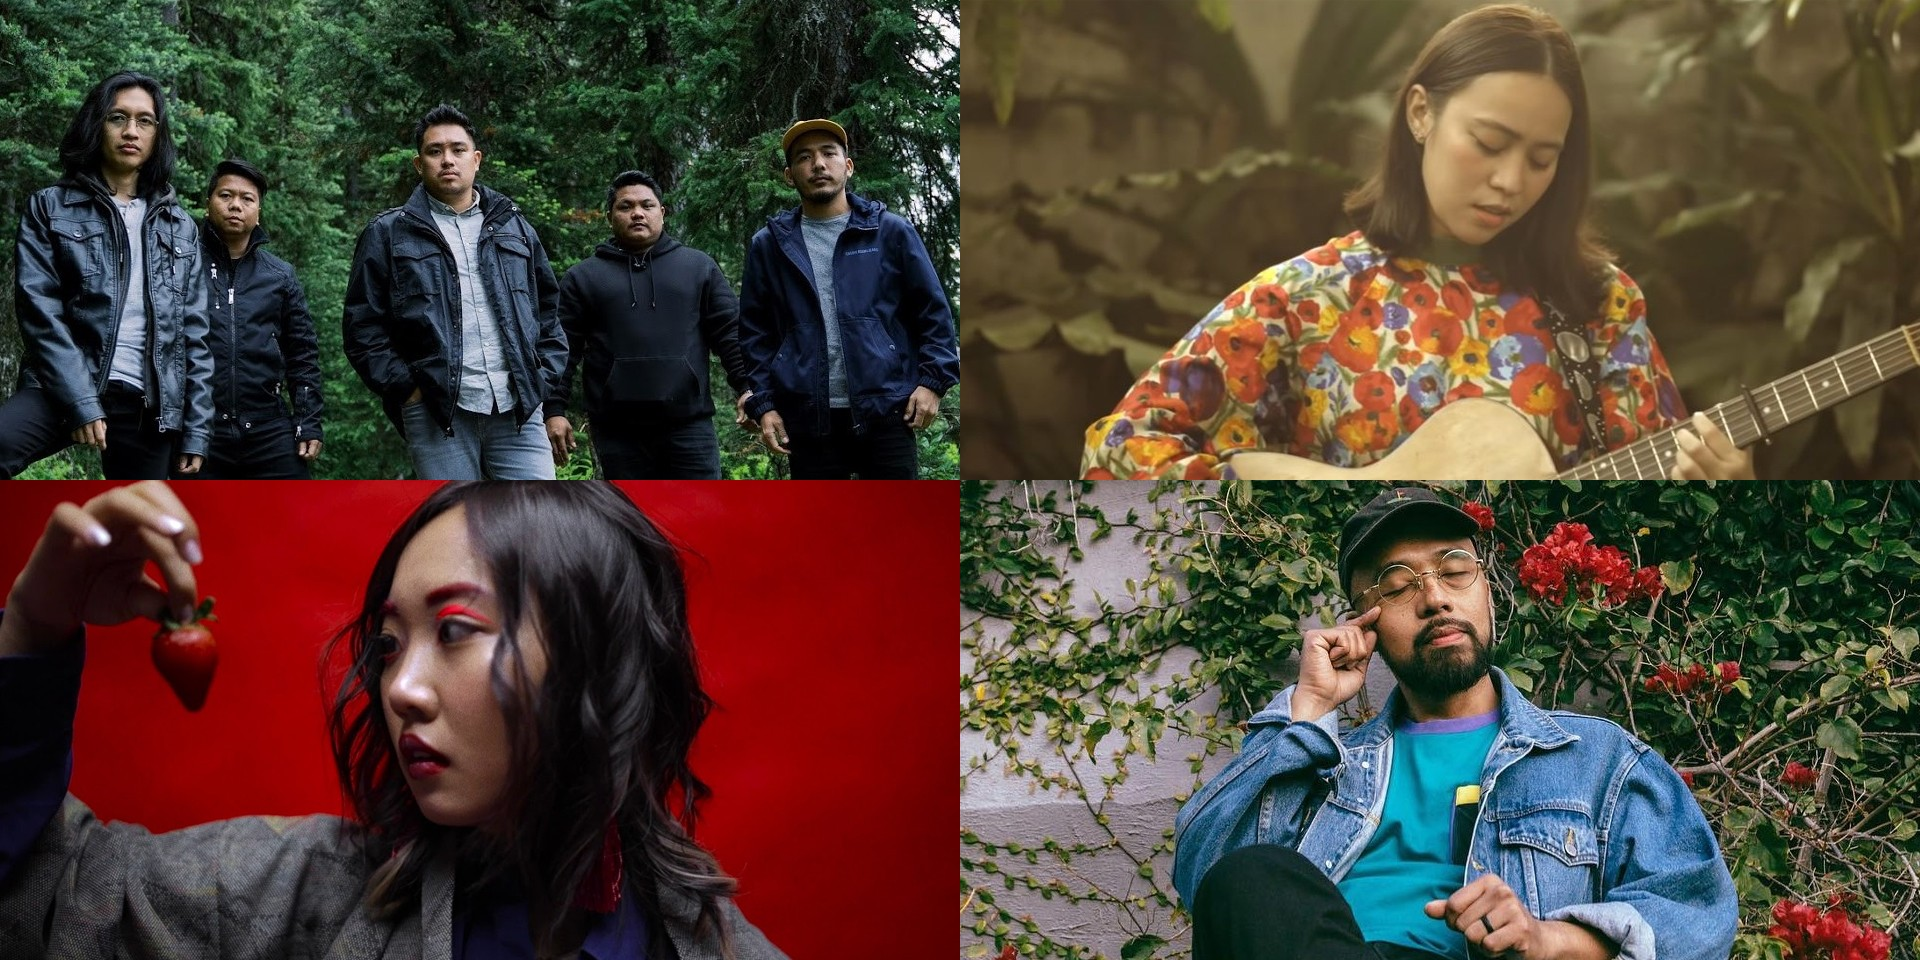 December Avenue, ena mori, Mark Redito, Reese Lansangan, and more release new music – listen